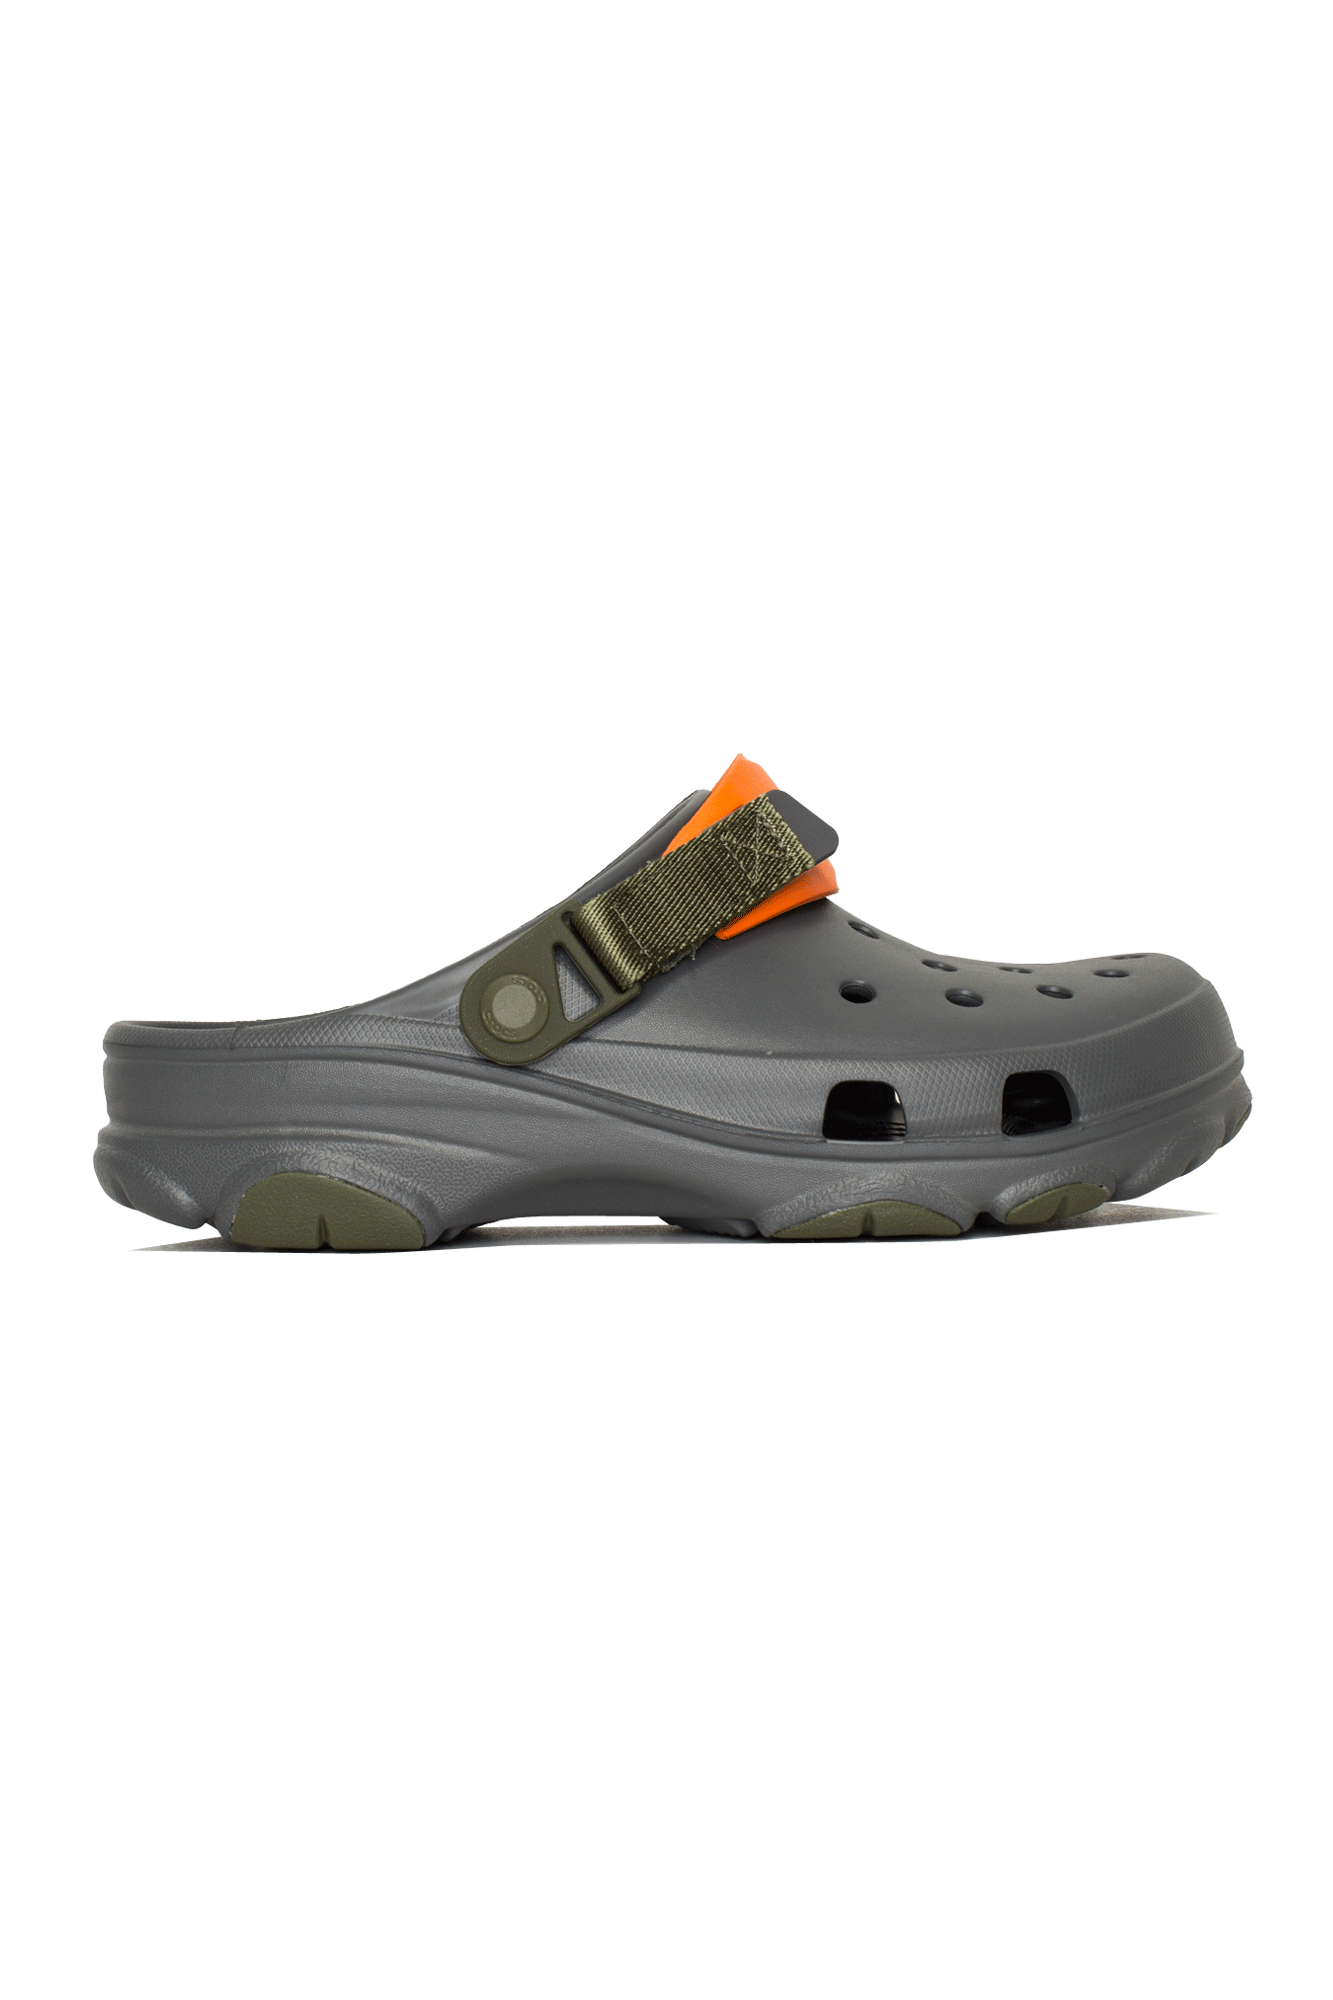 Crocs Sandali & Ciabatte All Terrain Glog M Grigio CR.206340#000#SGMT#7 - One Block Down